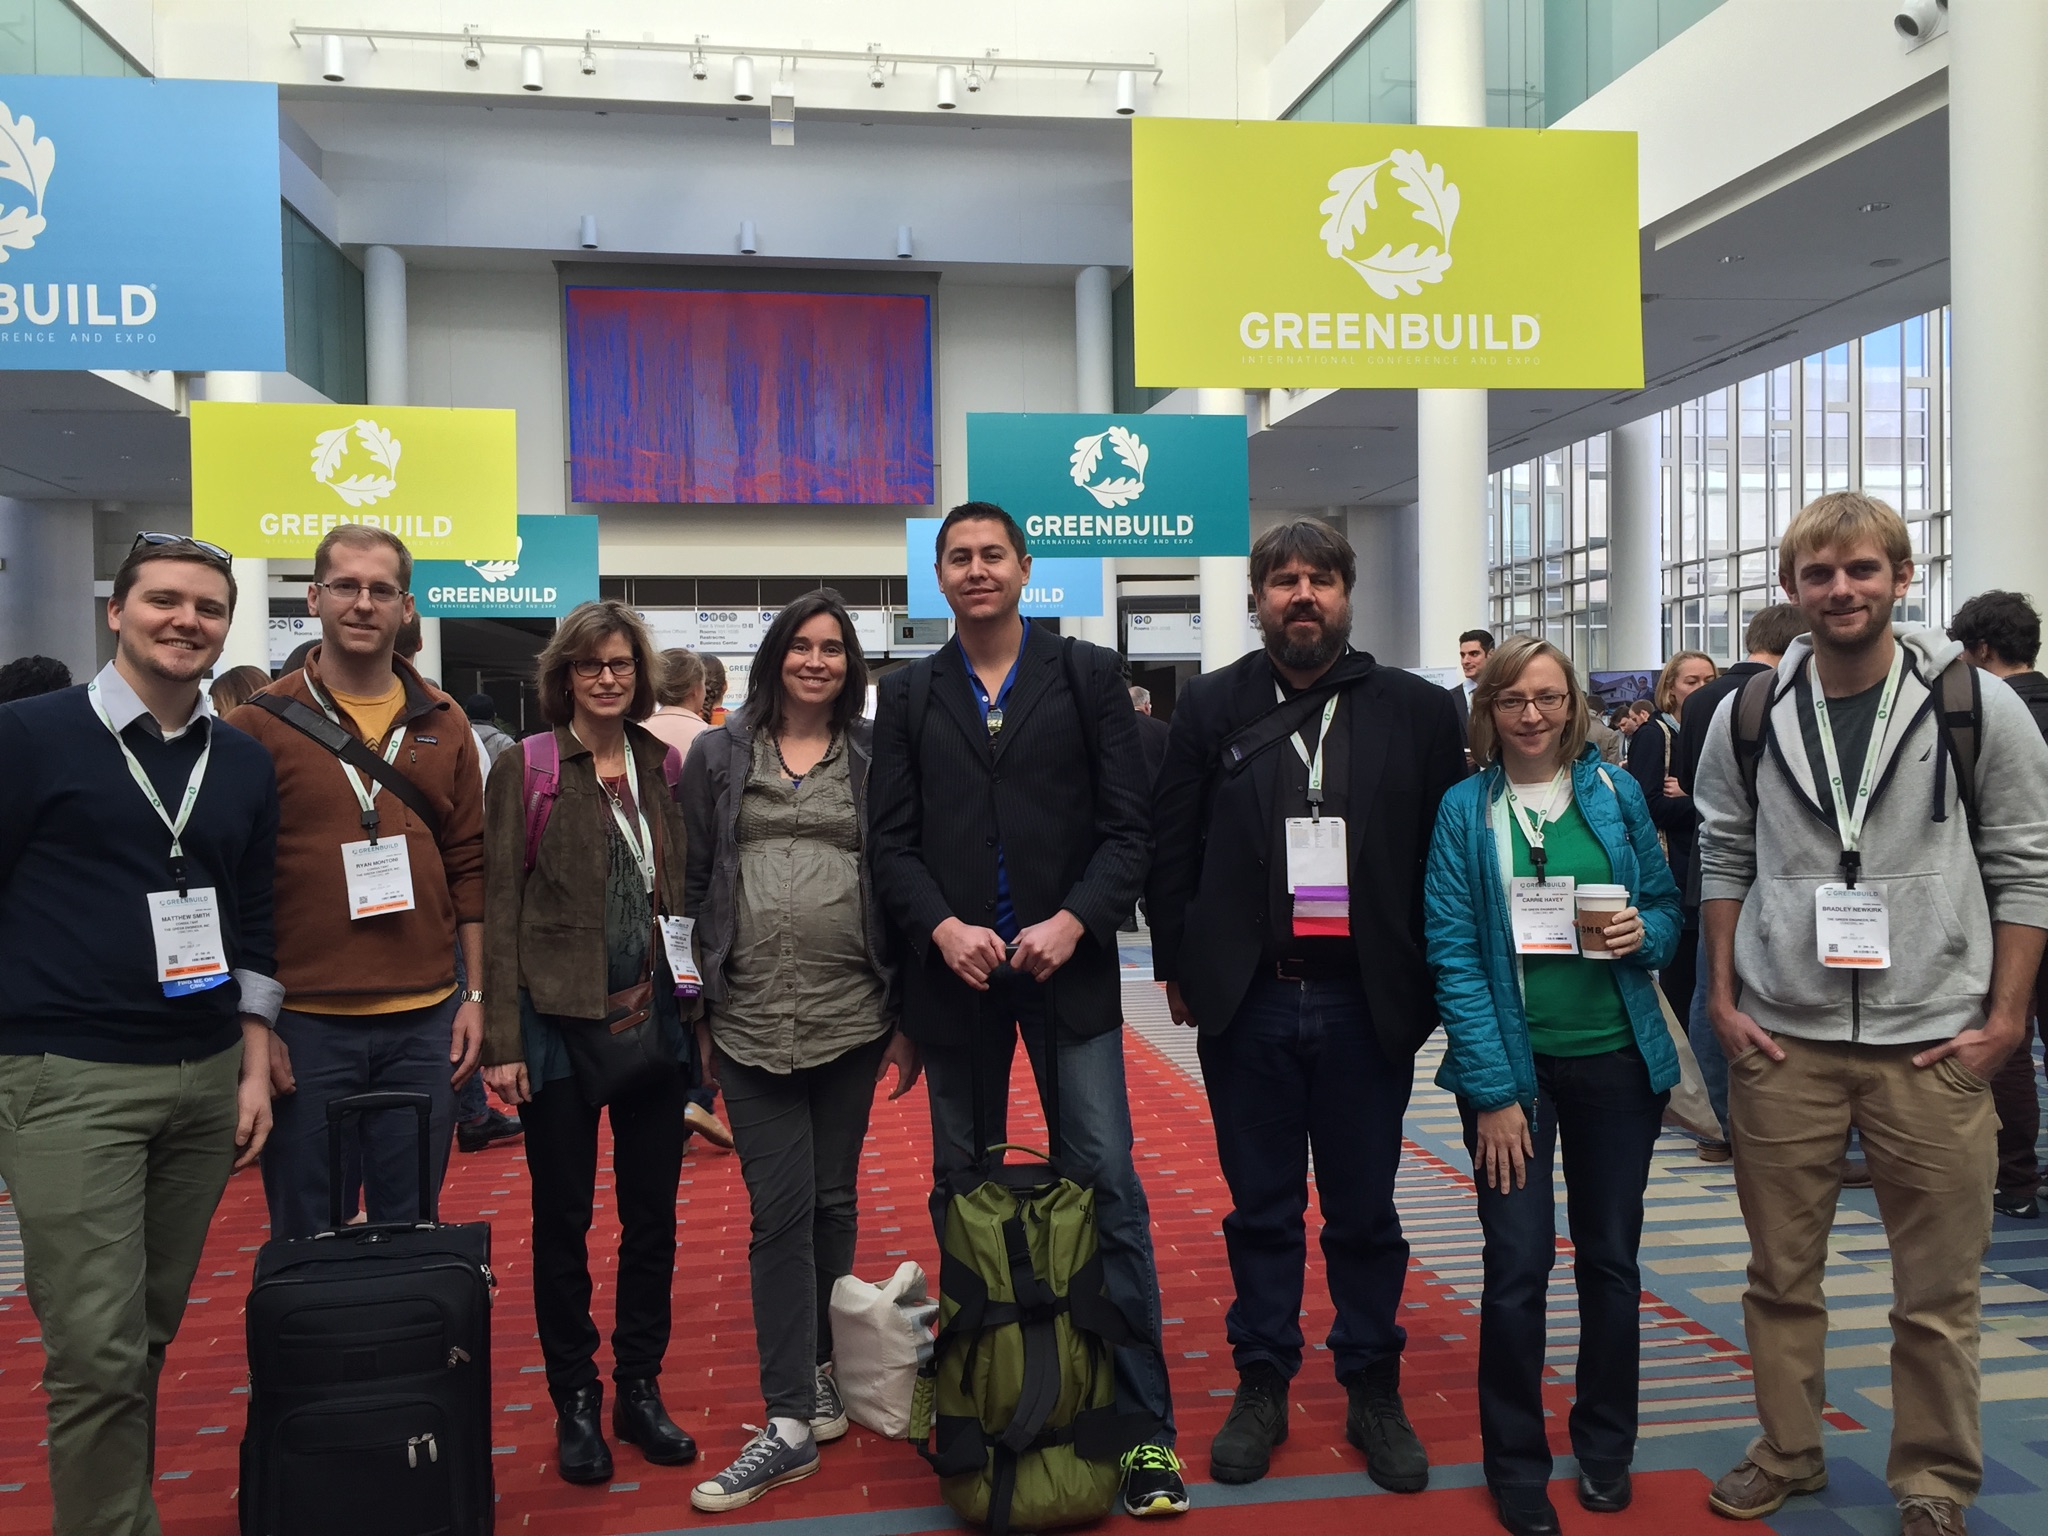 The TGE Team bids Greenbuild goodbye.